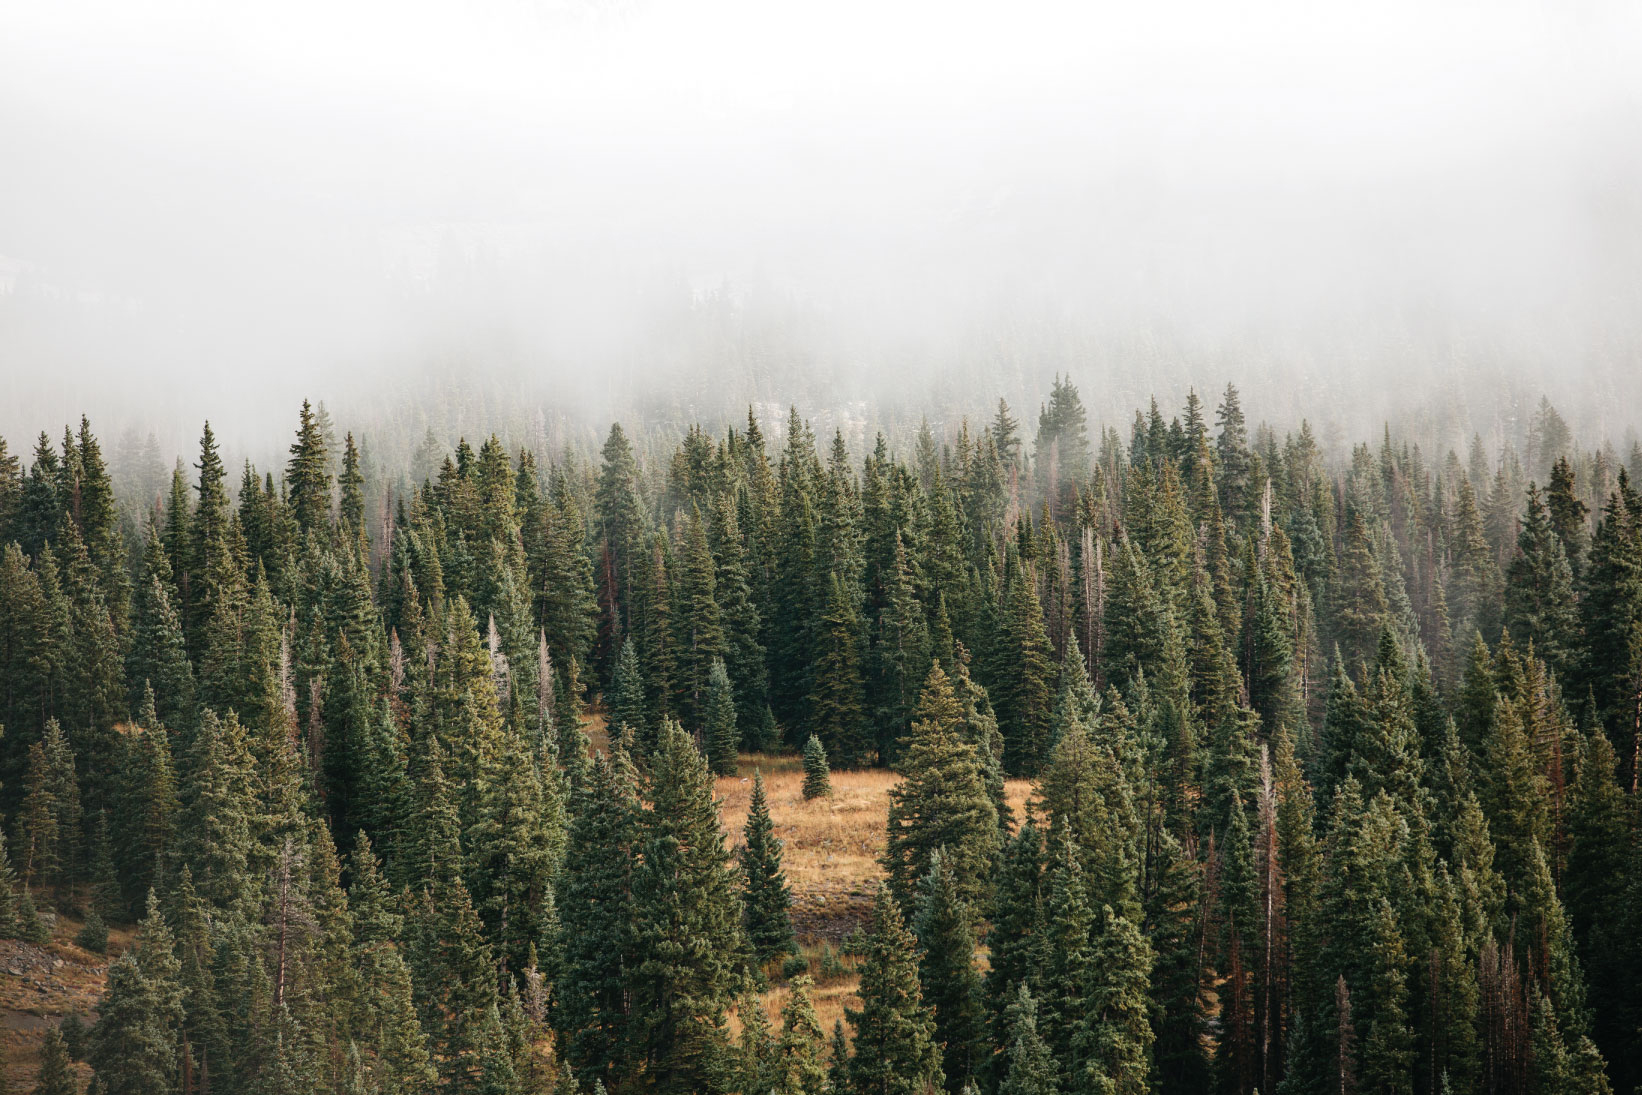 A forest of coniferous trees with fog over the tops of the trees making it difficult to see into the distance.